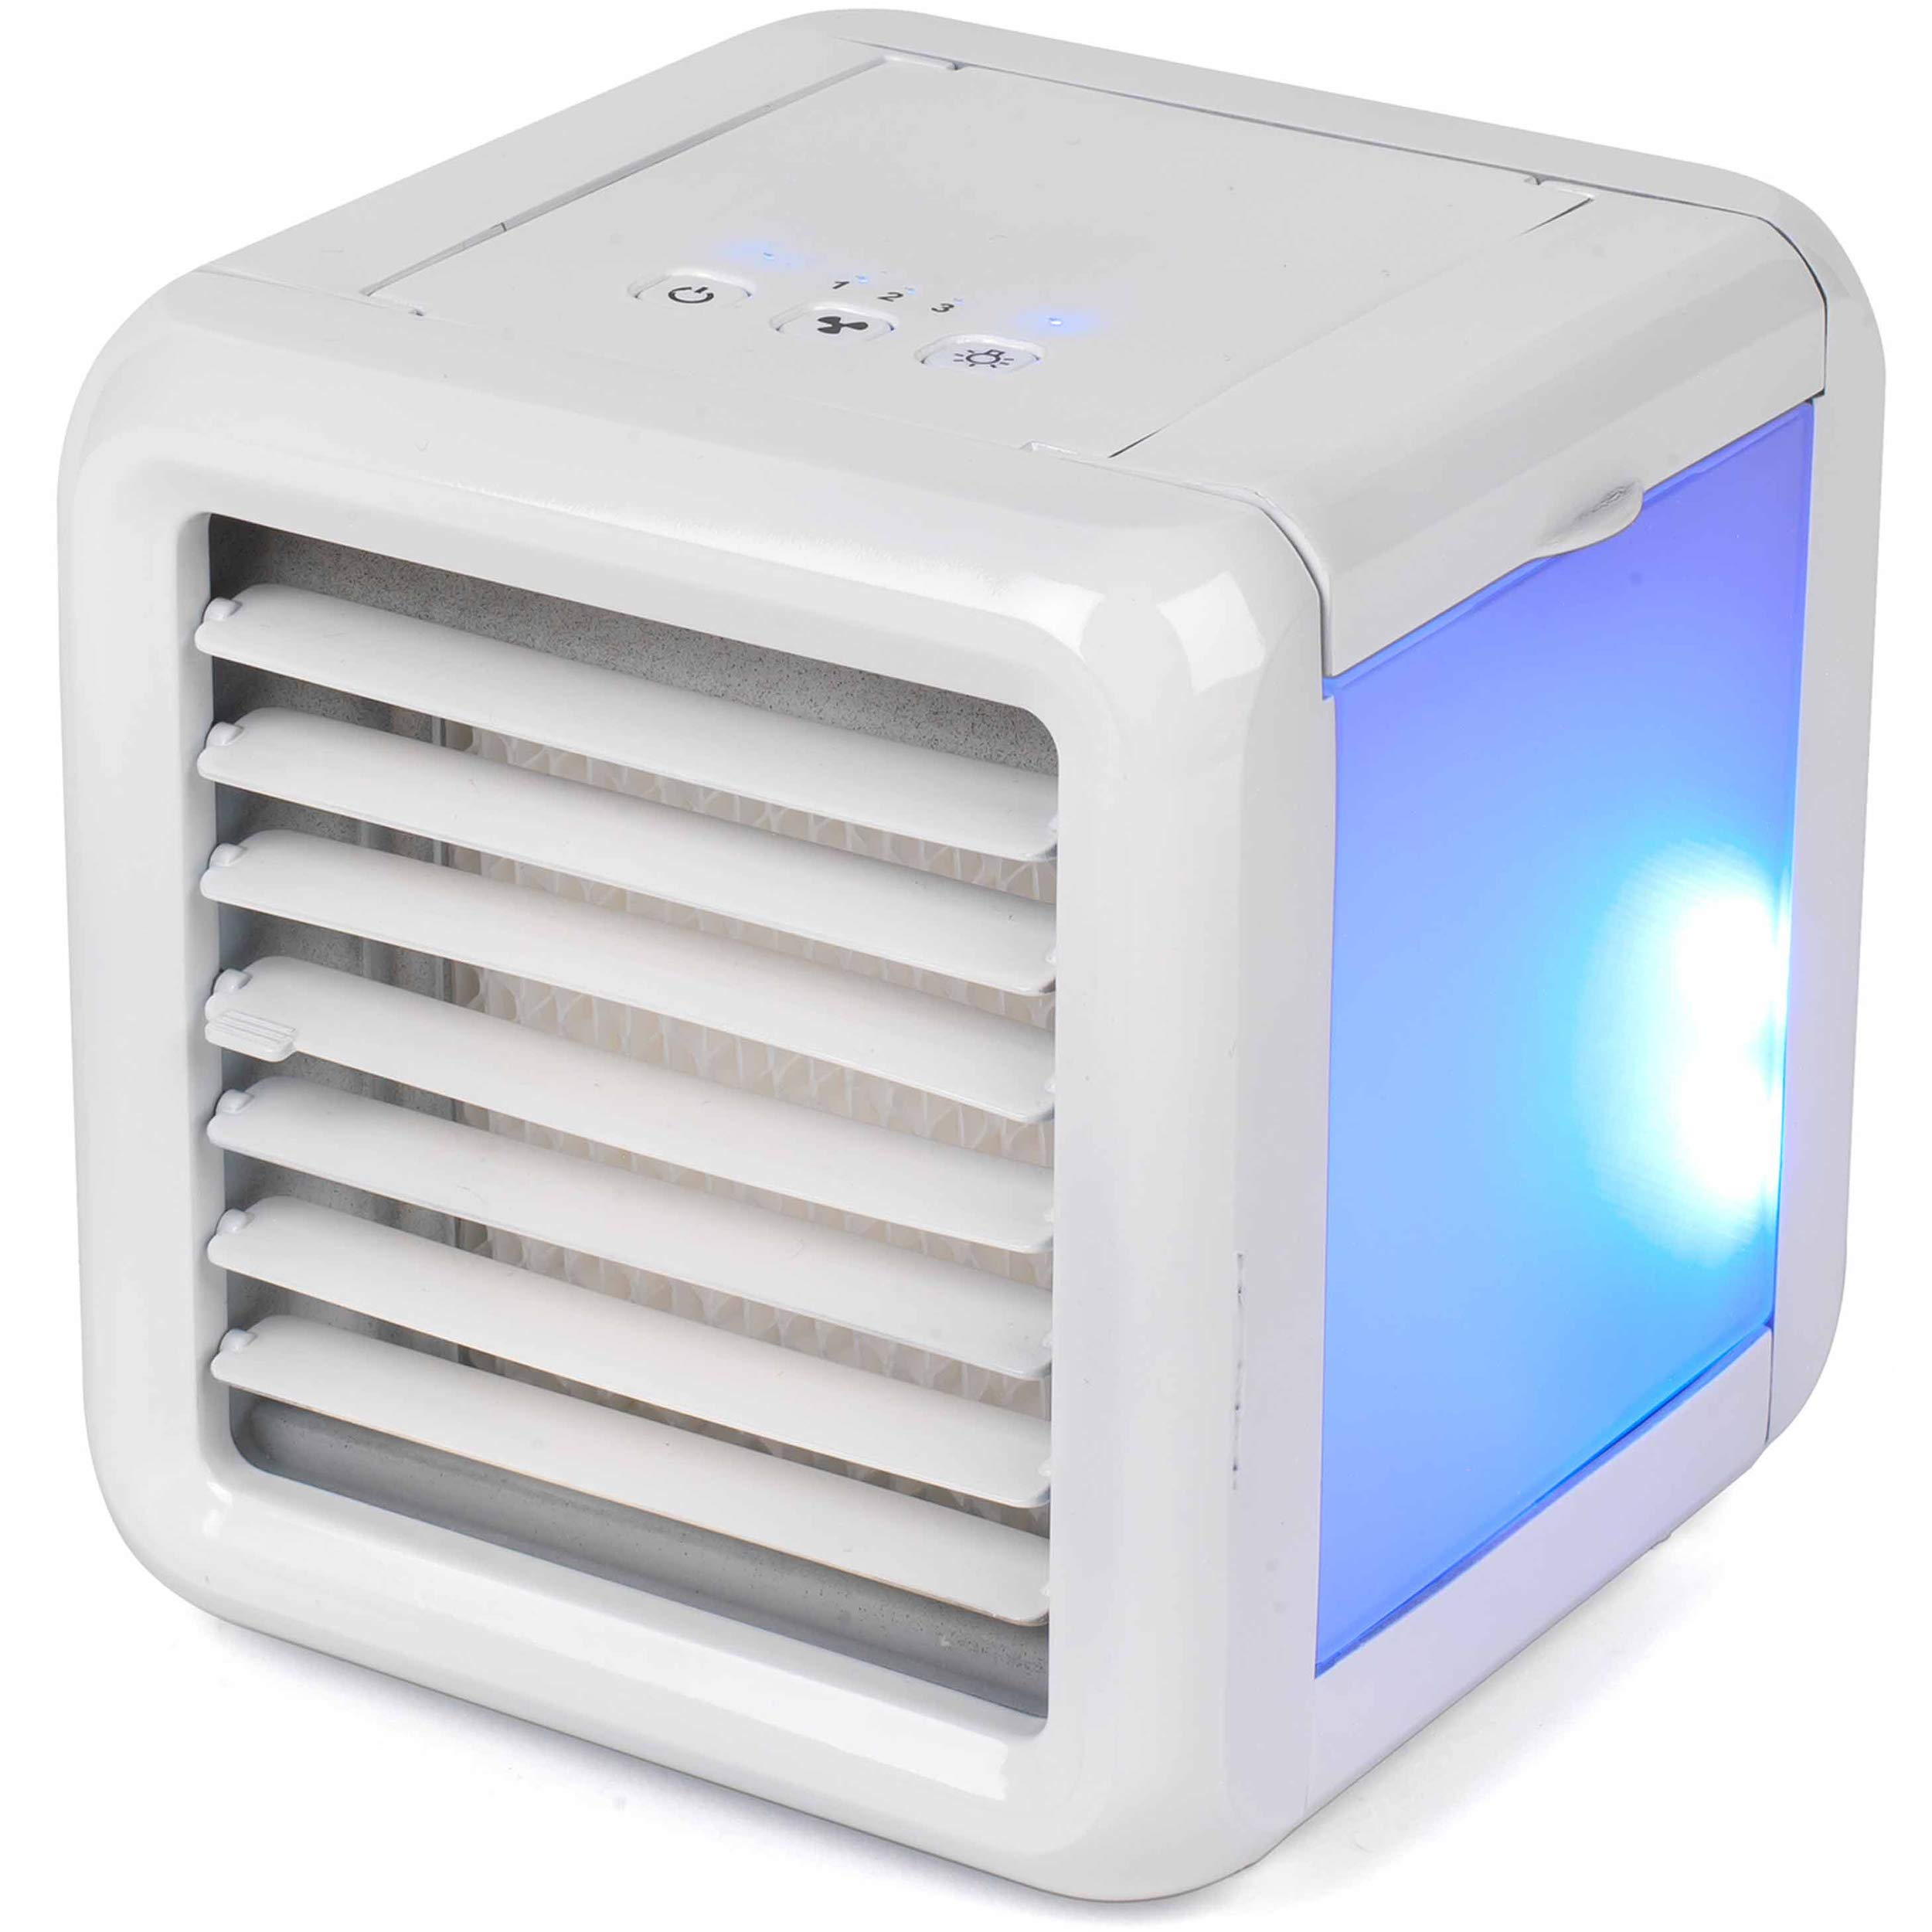 Humidifier 3 in 1 USB Portable Mini Air Conditioner Lmani Arctic Air Space Cooler The Quick /& Easy Way to Cool Any Space White Purifier with 7 colors LED Night